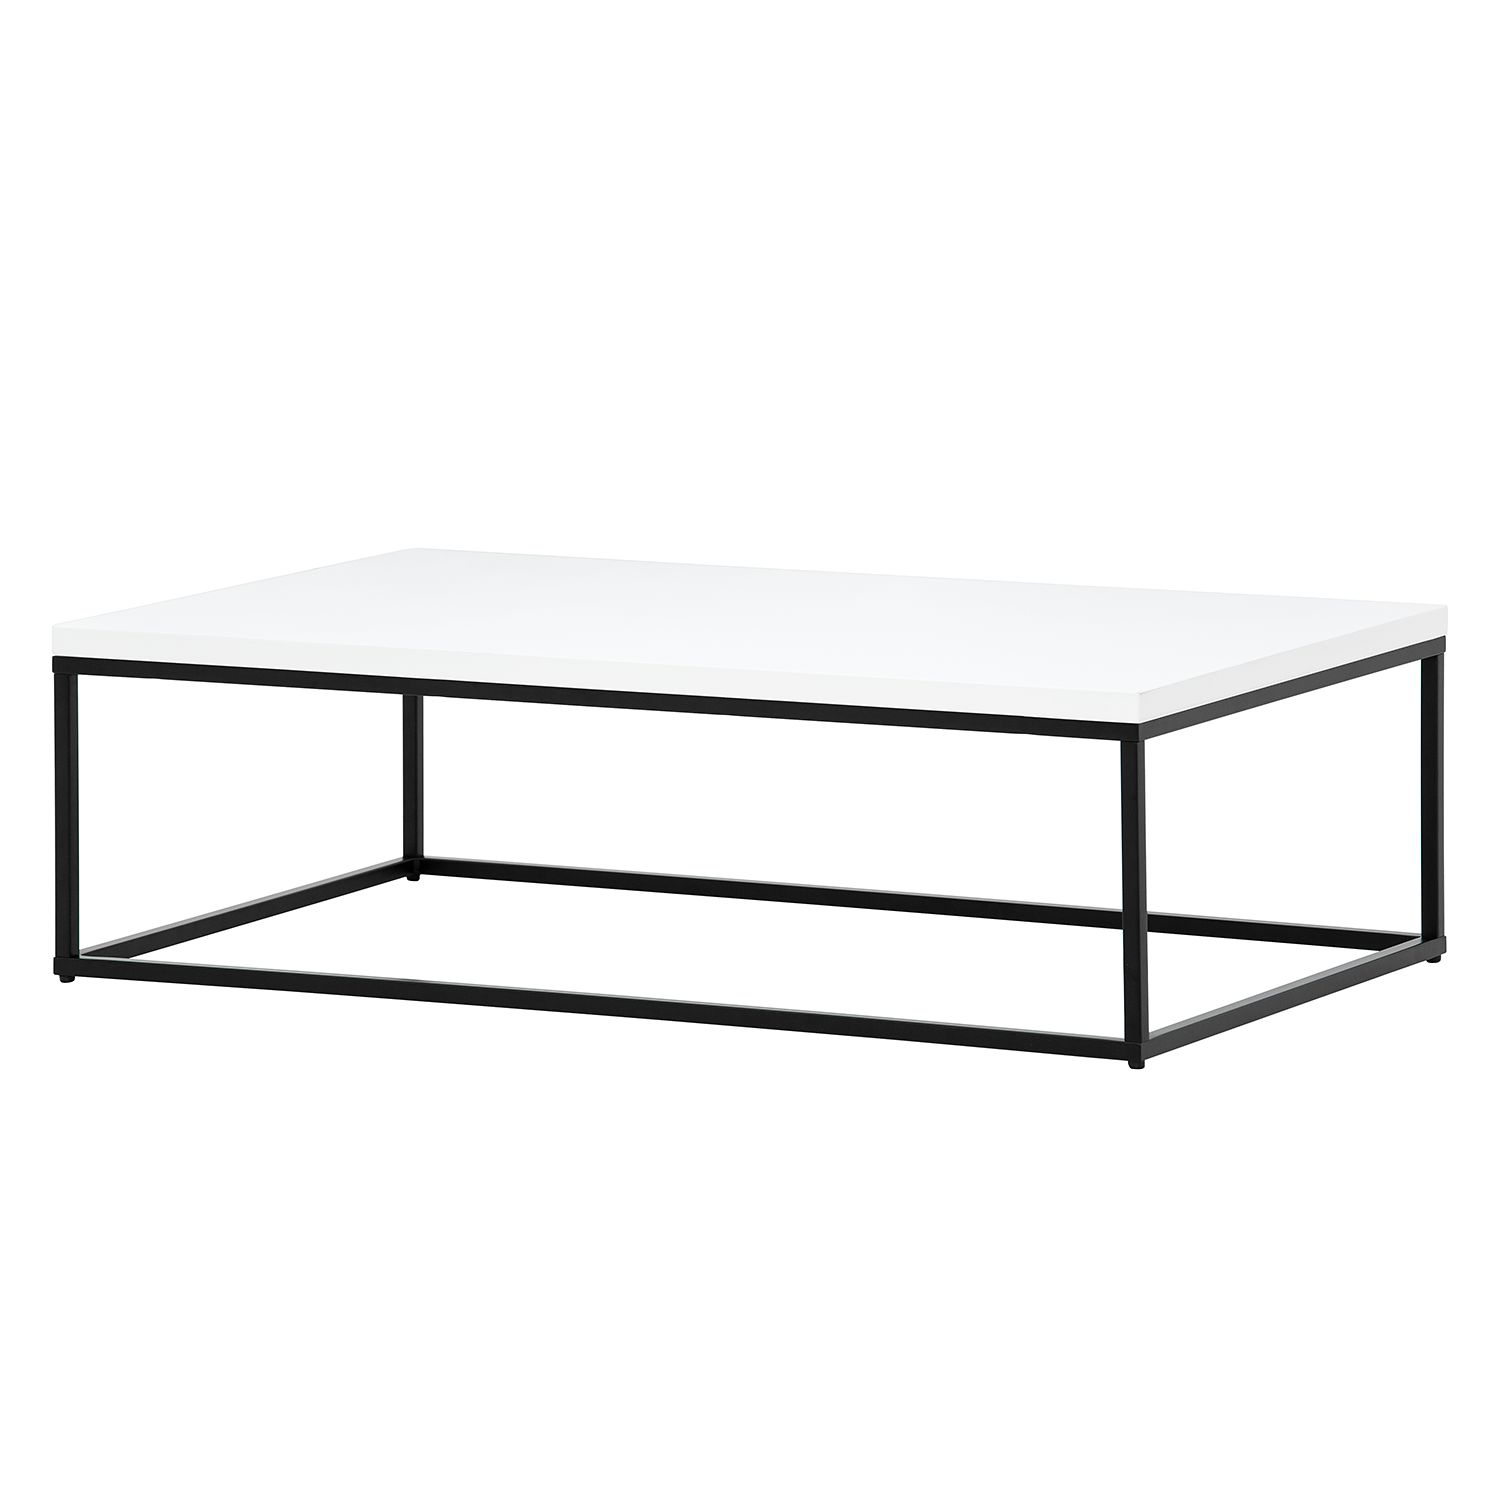 Table basse Lando II - Blanc brillant / Noir - 102,5 x 60 cm,